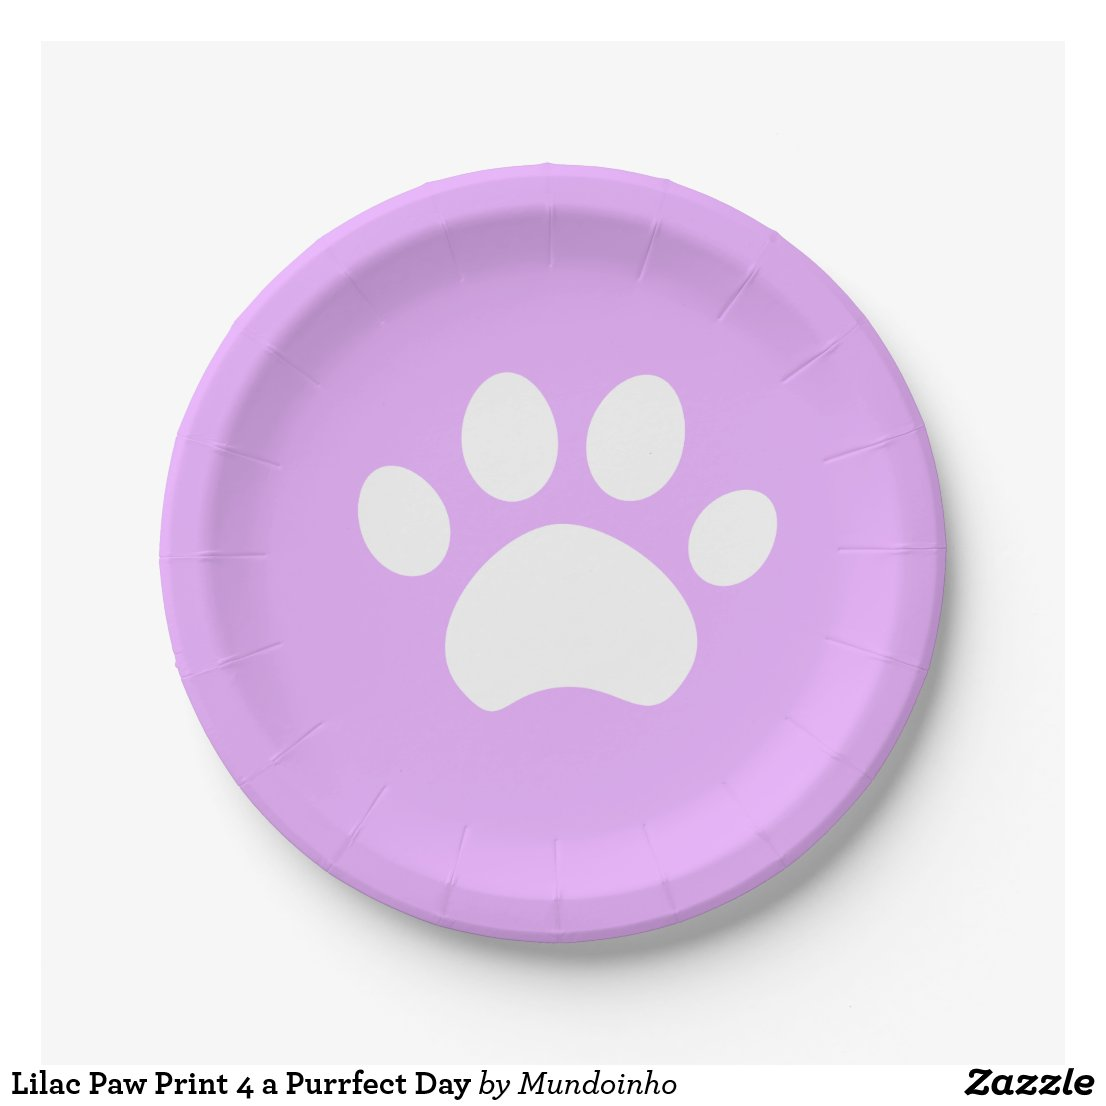 Lilac Paw Print 4 a Purrfect Day Paper Plate